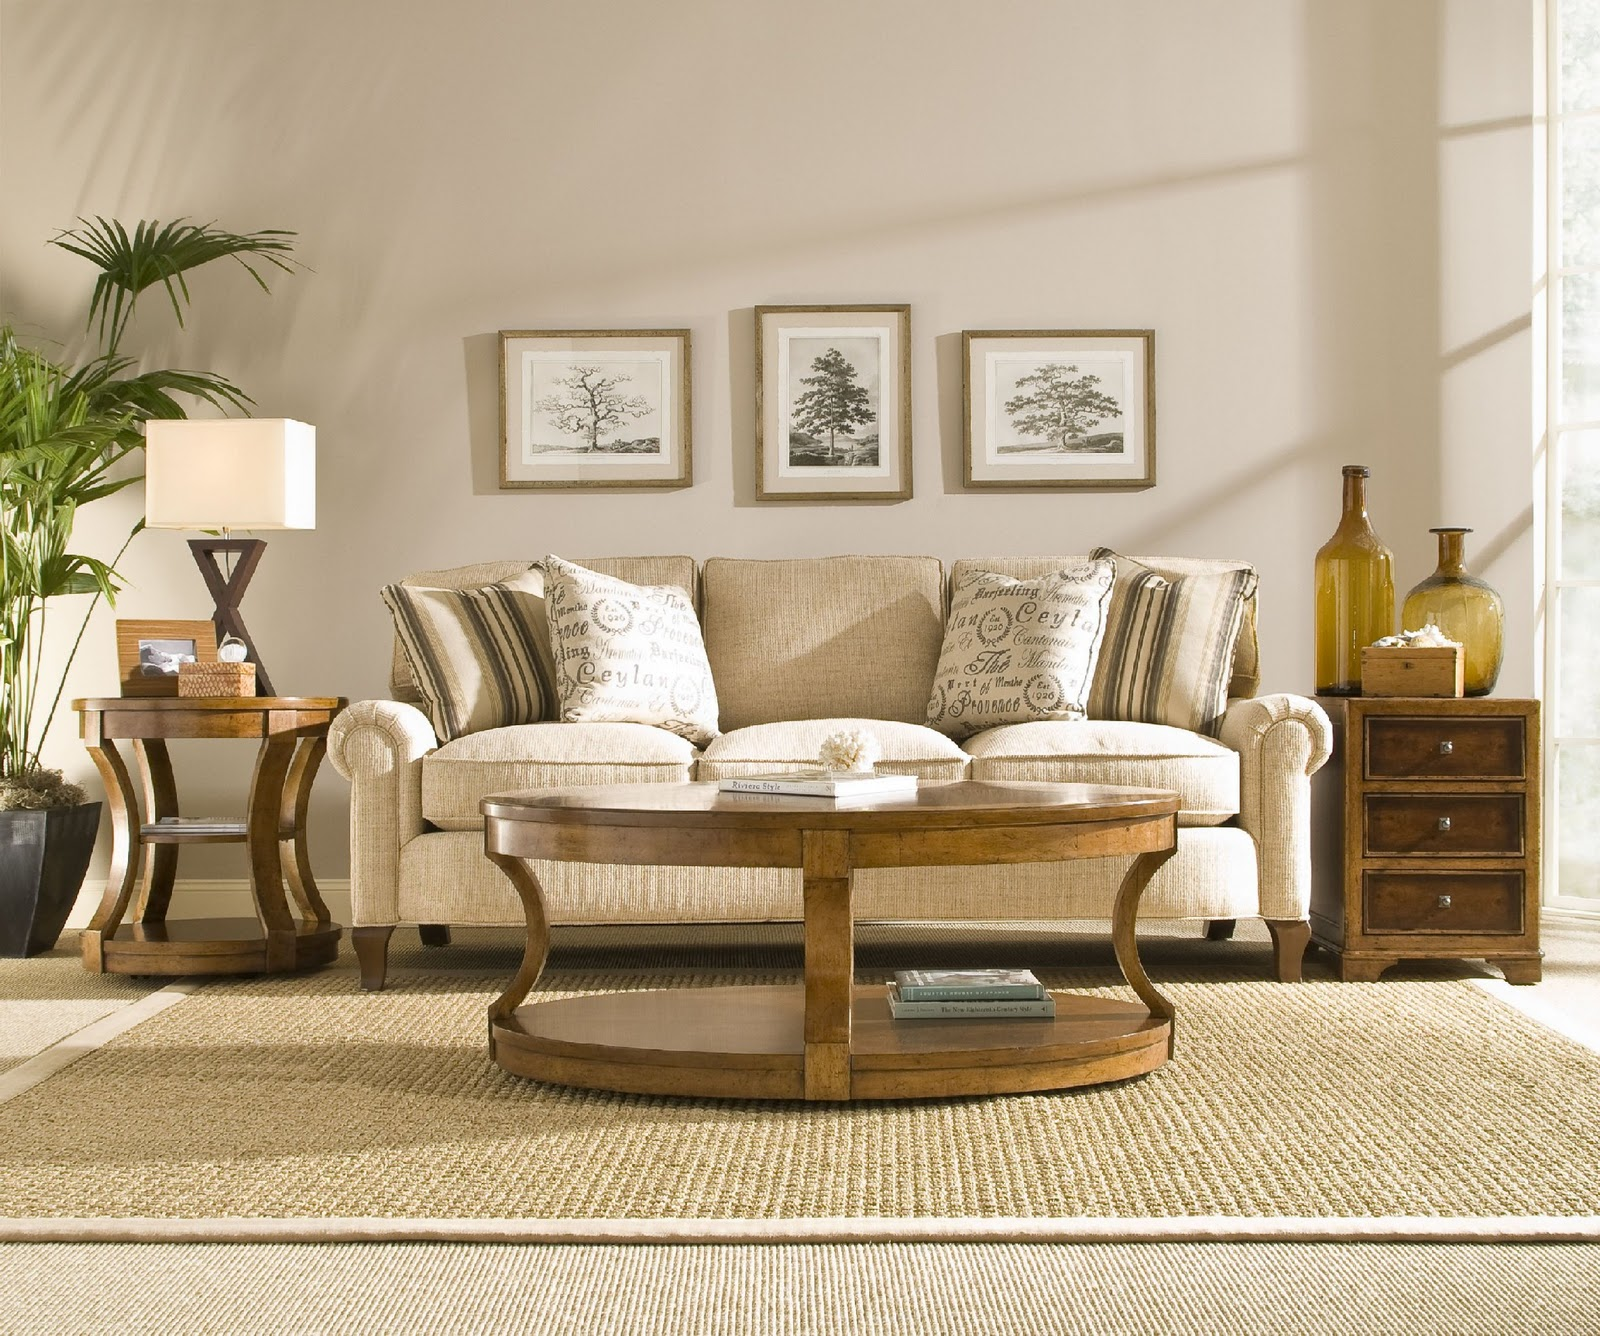 Gift & Home Today: Transitional style furniture for ...